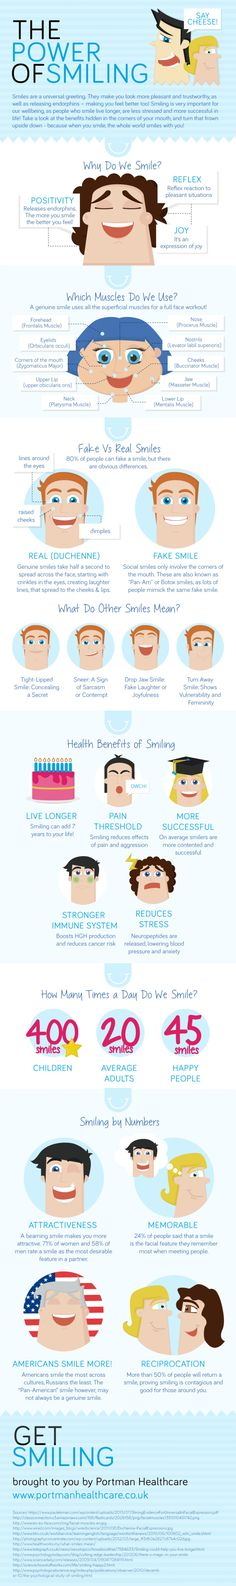 The Power of Smiling --shared by billytrail on Sep 05, 2014 - See more at: http://visual.ly/power-smiling#sthash.S7rnmrMb.dpuf